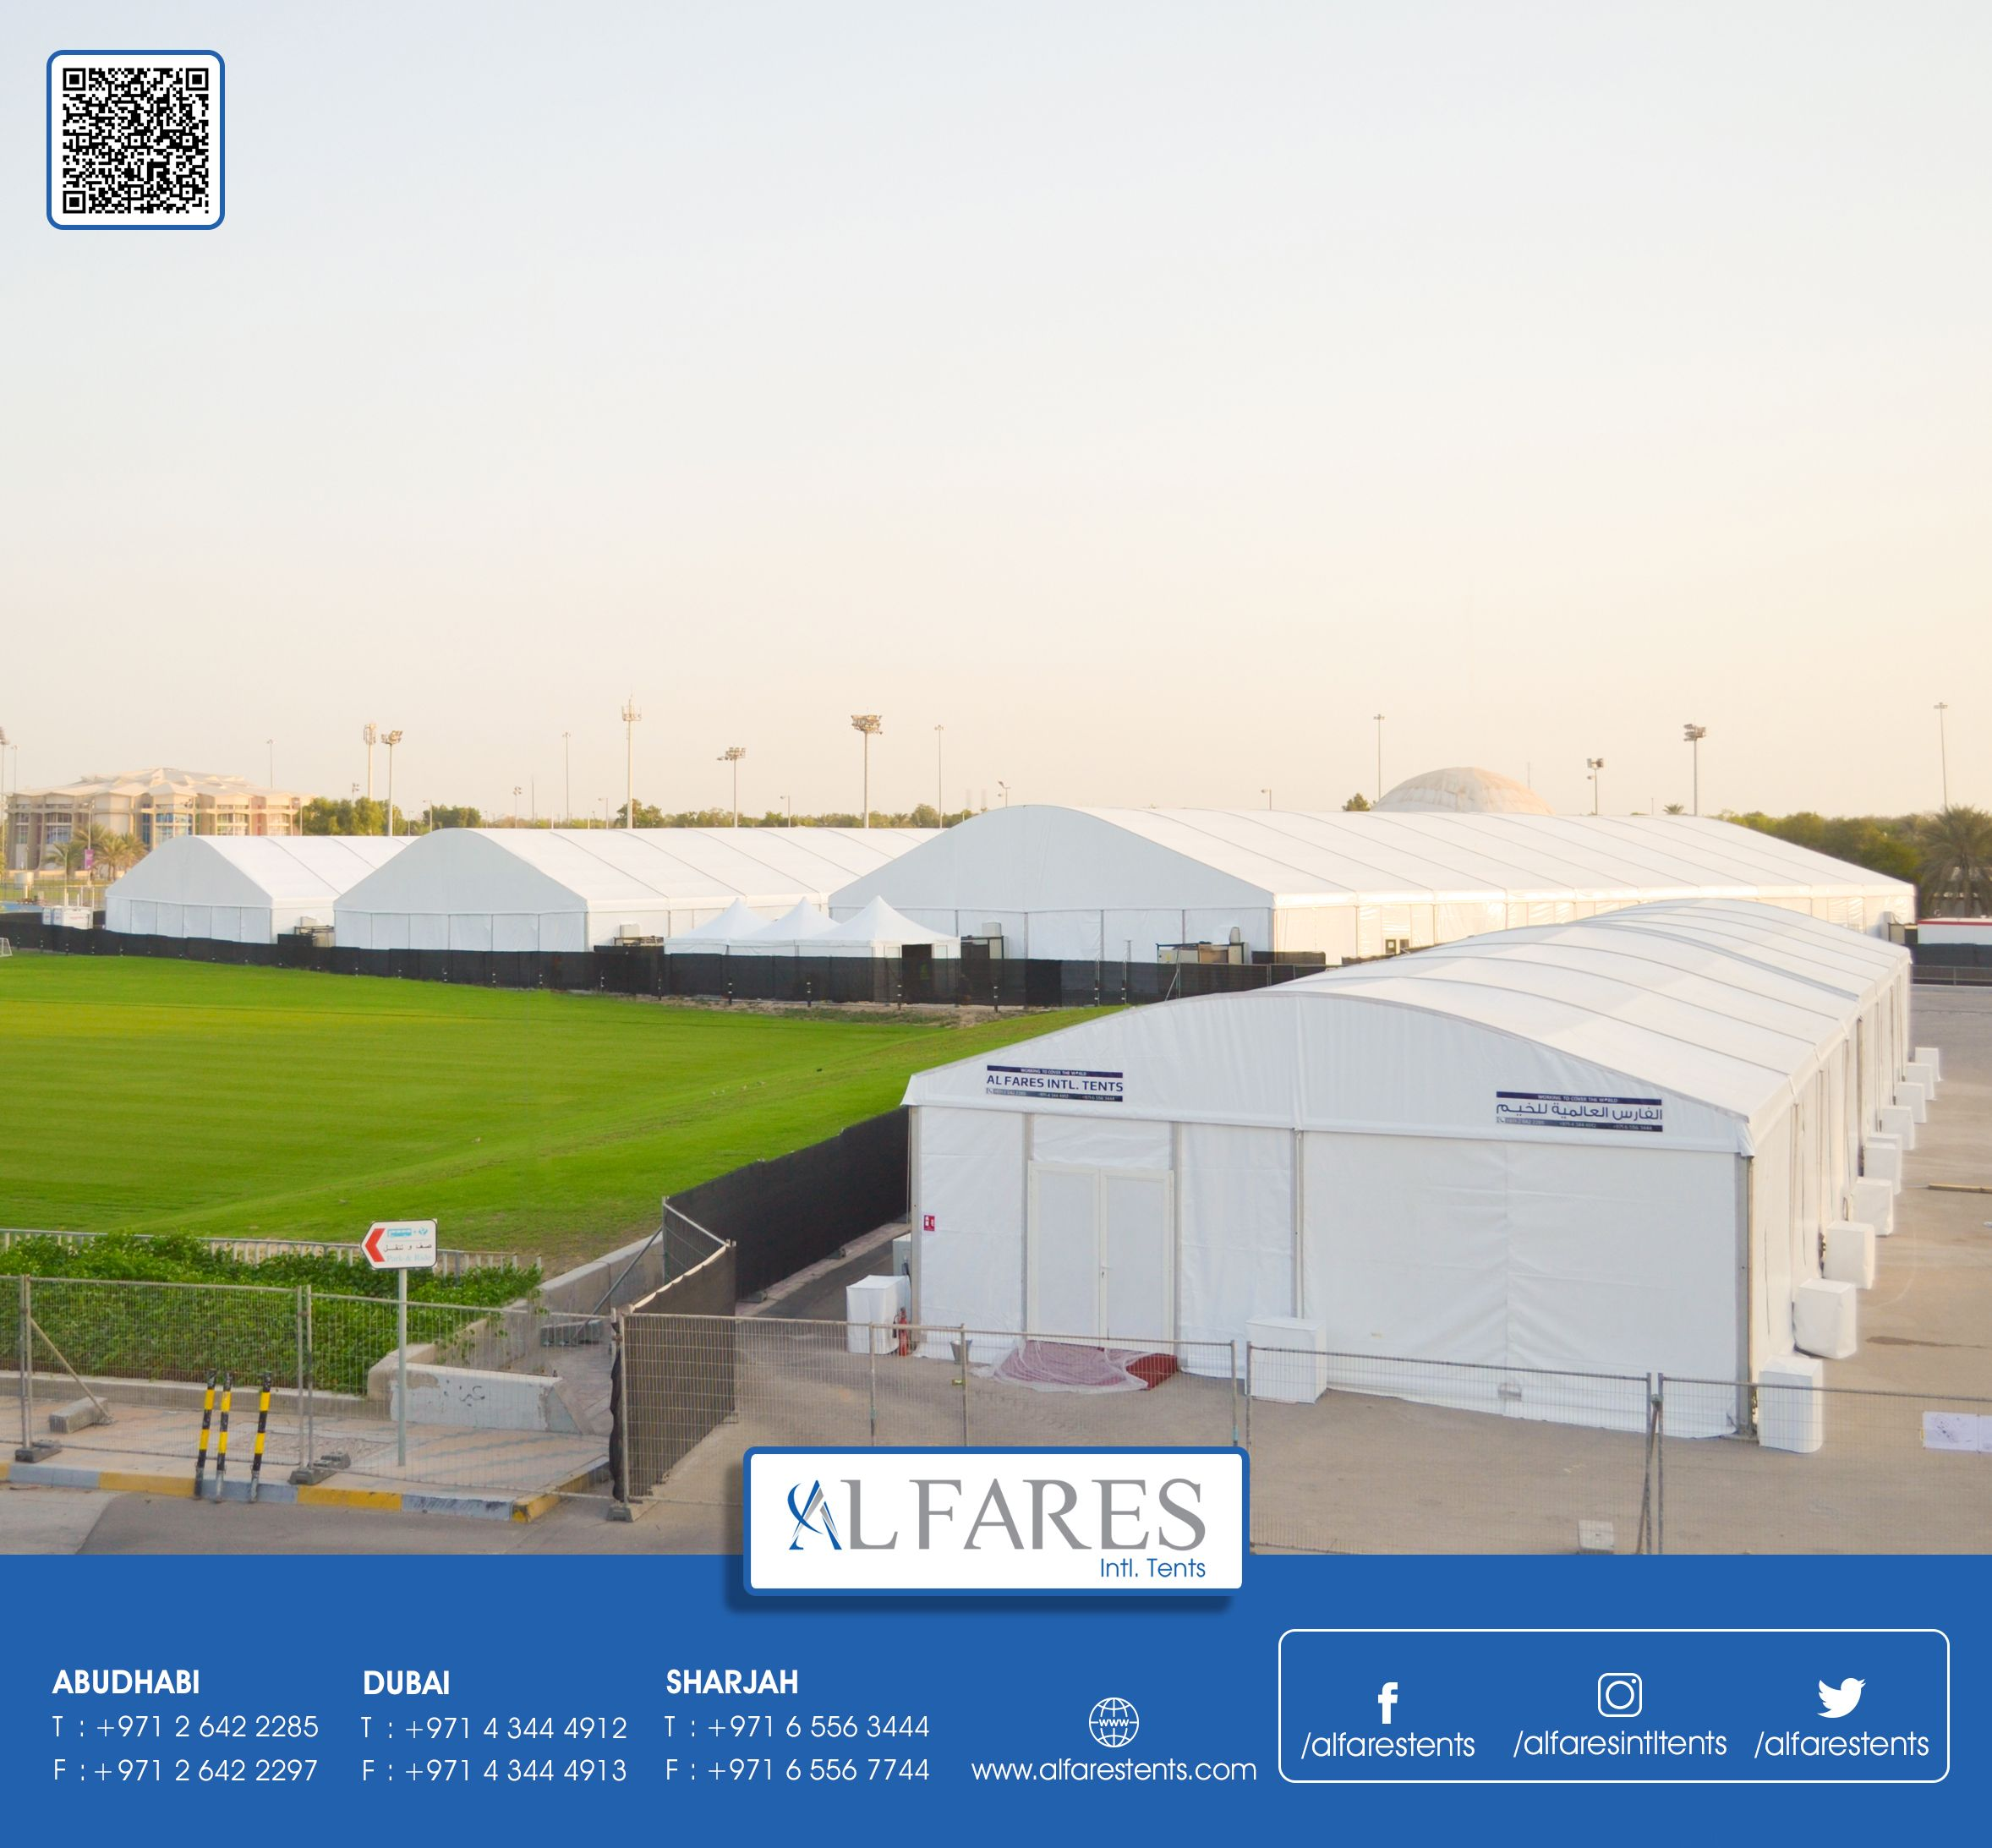 Tents And Prefabricated Structures Event Tent Rental Tent Rentals Prefabricated Structures